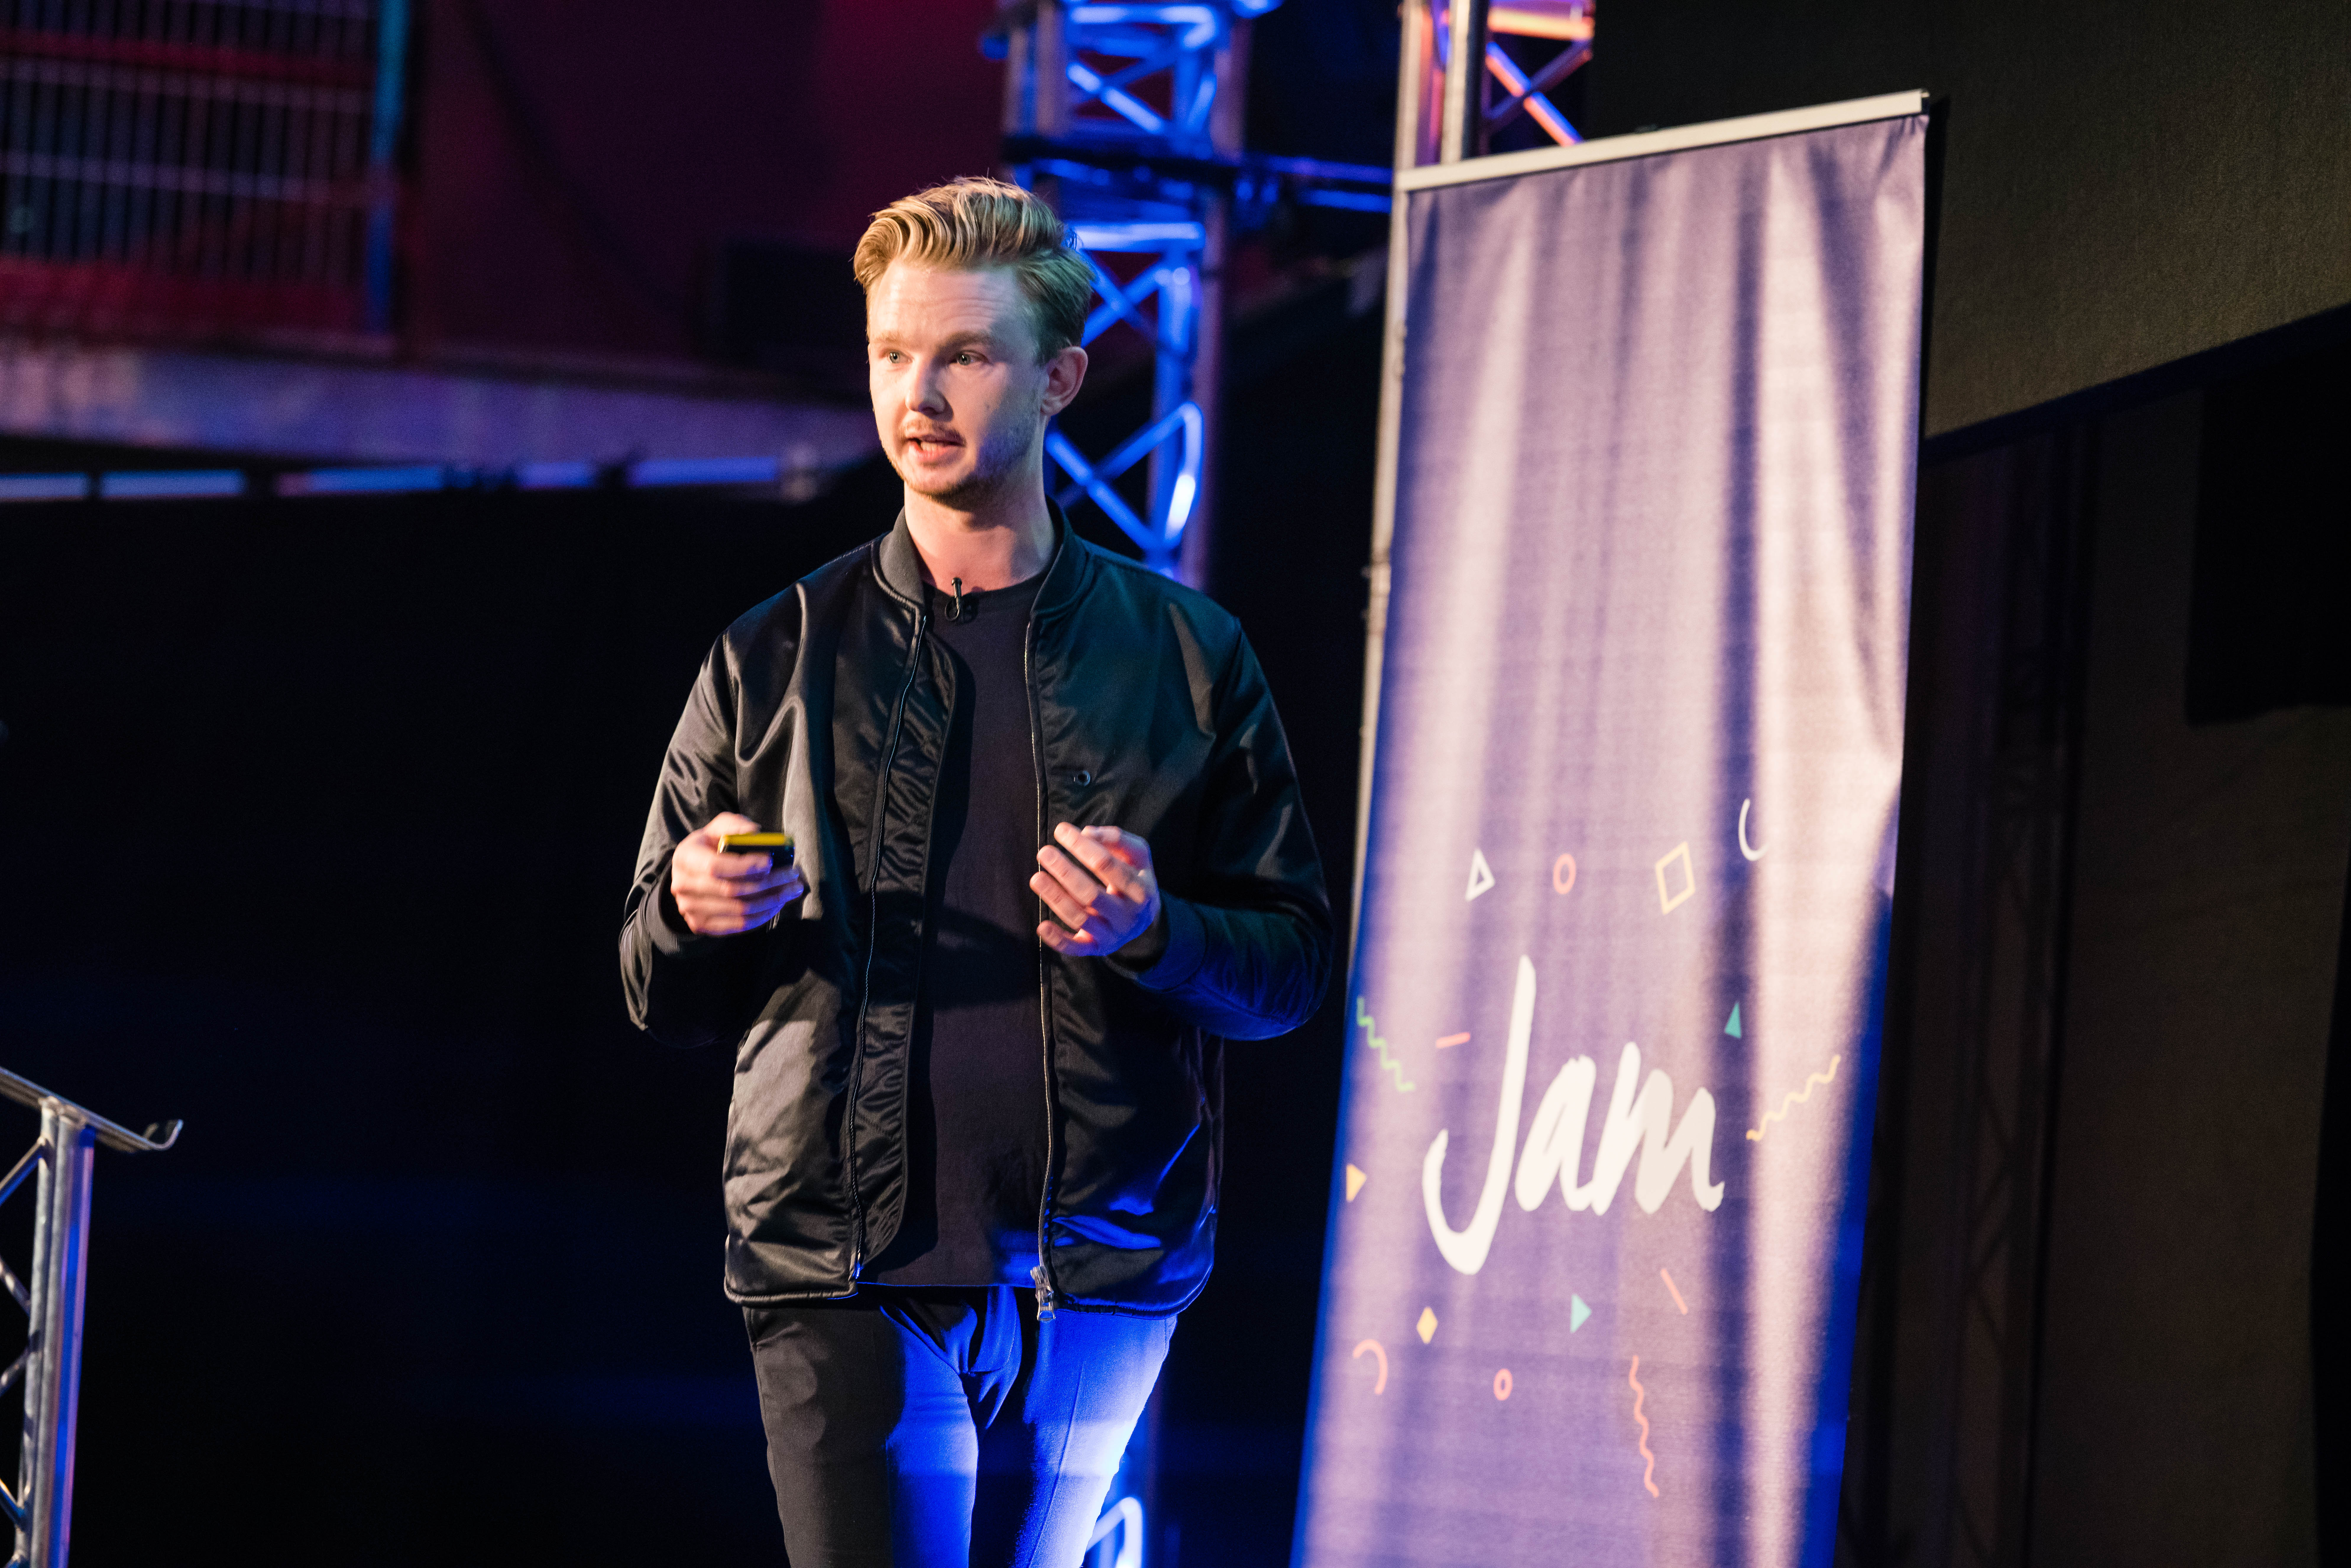 Peakon talk about building a SaaS platform at JAM 2017